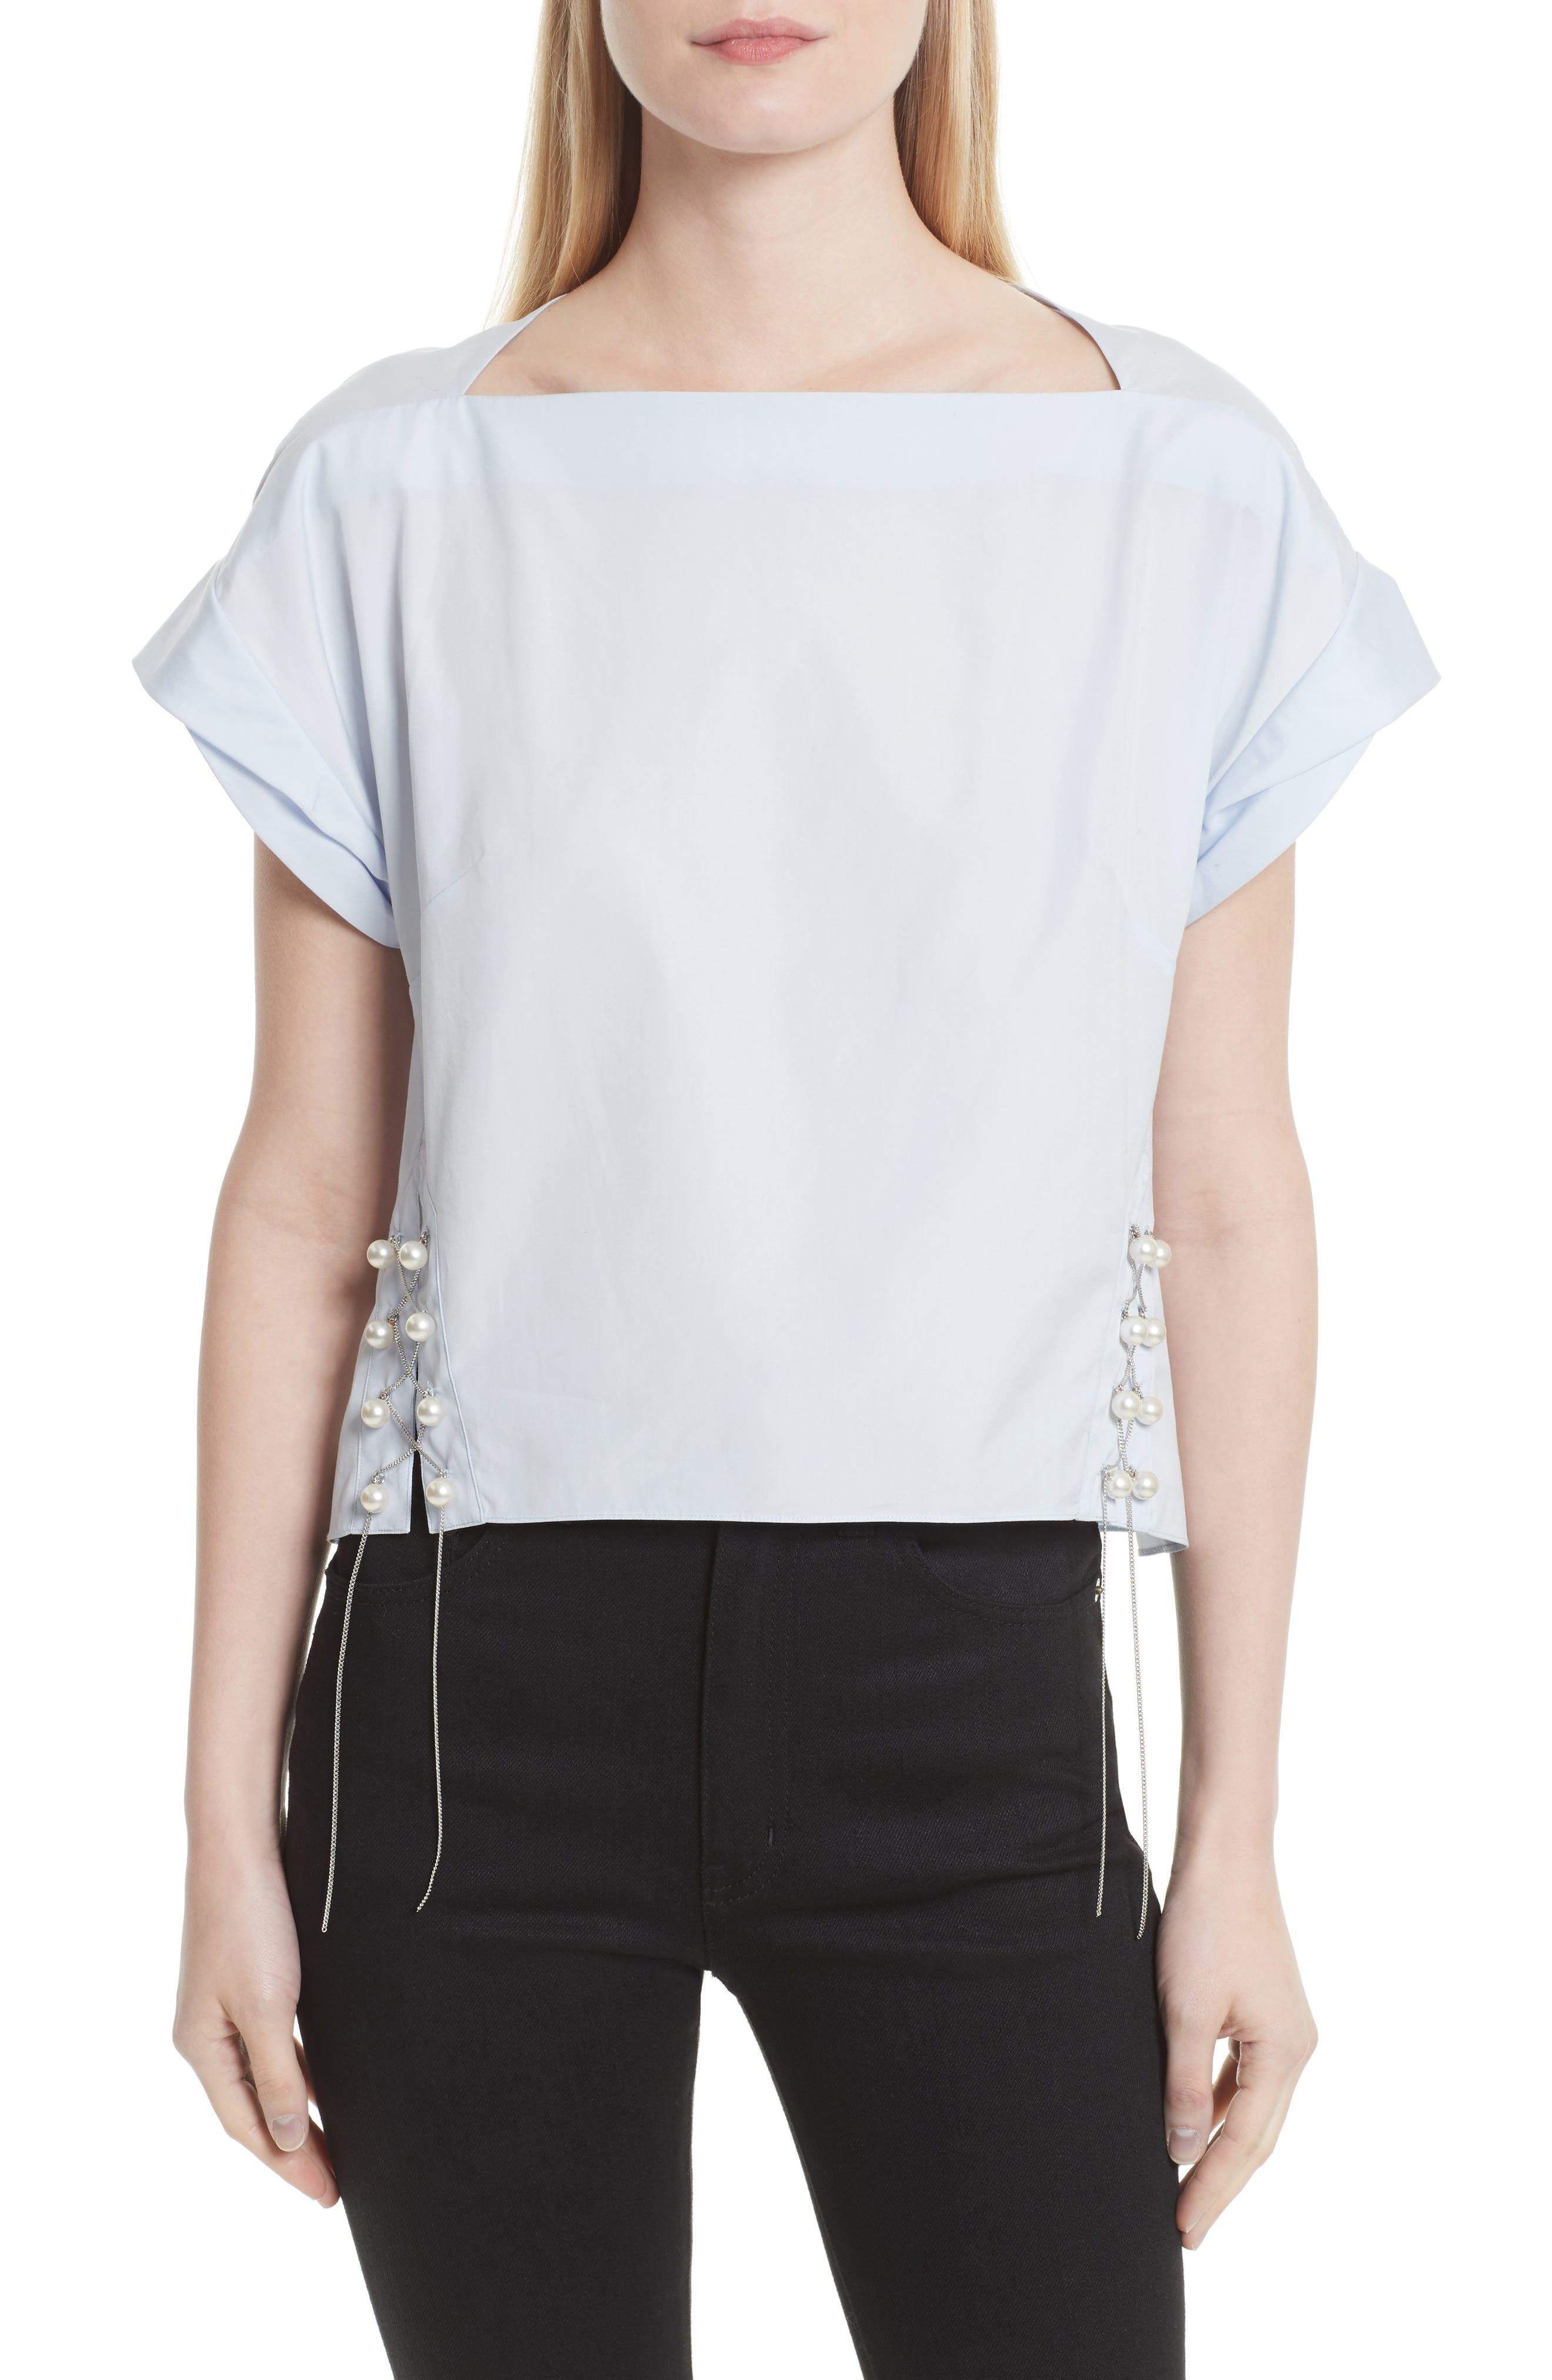 3.1 PHILLIP LIM Faux Pearl & Chain Lacing Cotton Top